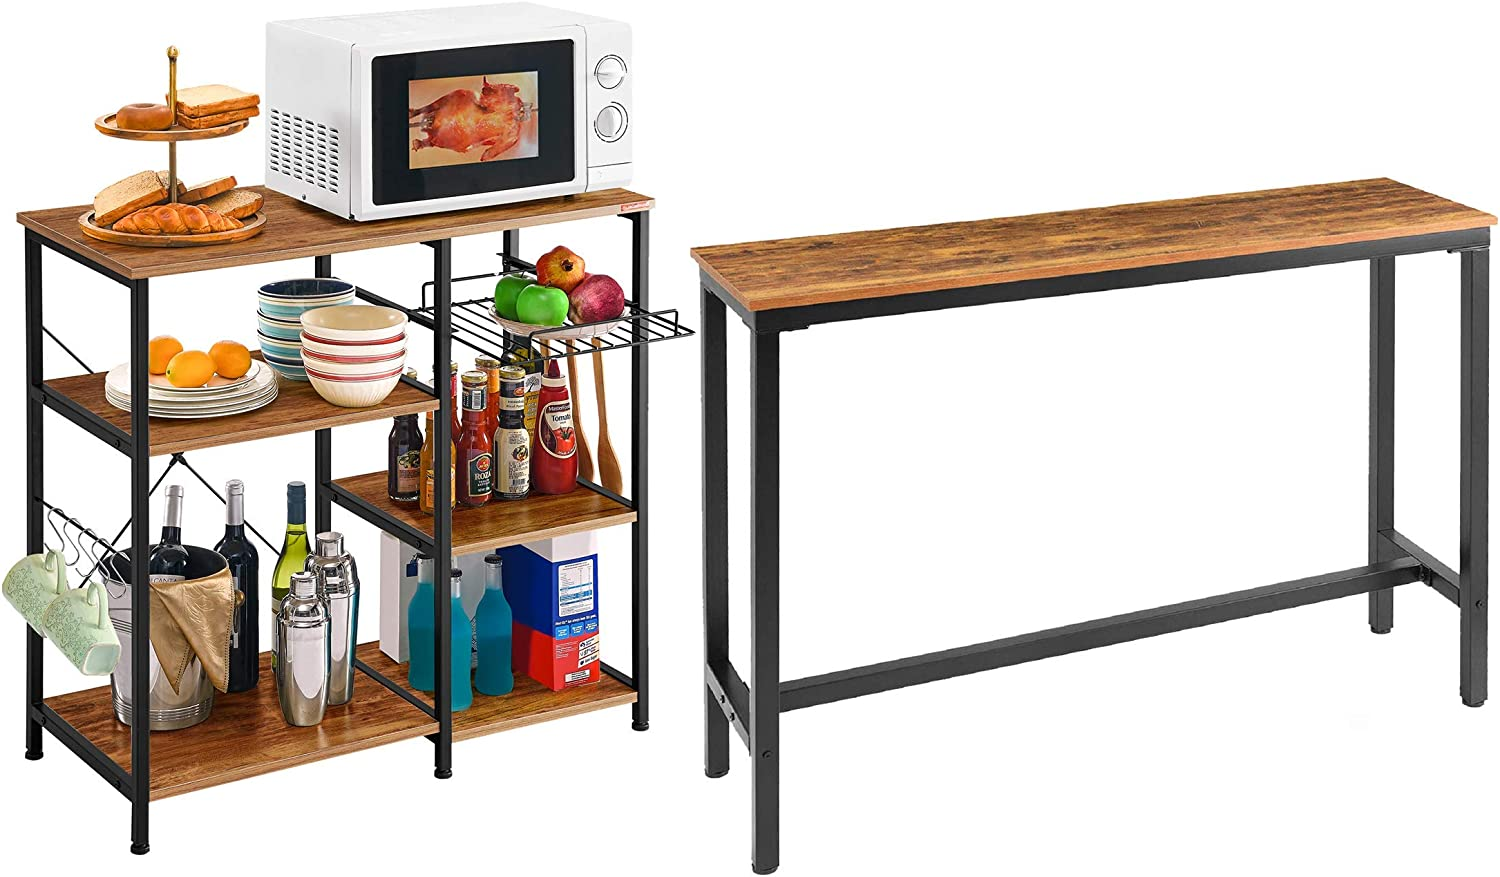 "Mr IRONSTONE 55.1"" Bar Table Pub Dining Height Table Vintage Bistro Table (Indoor USE ONLY) & Kitchen Baker's Rack Vintage Utility Storage Shelf Microwave Stand 3-Tier+3-Tier Table"